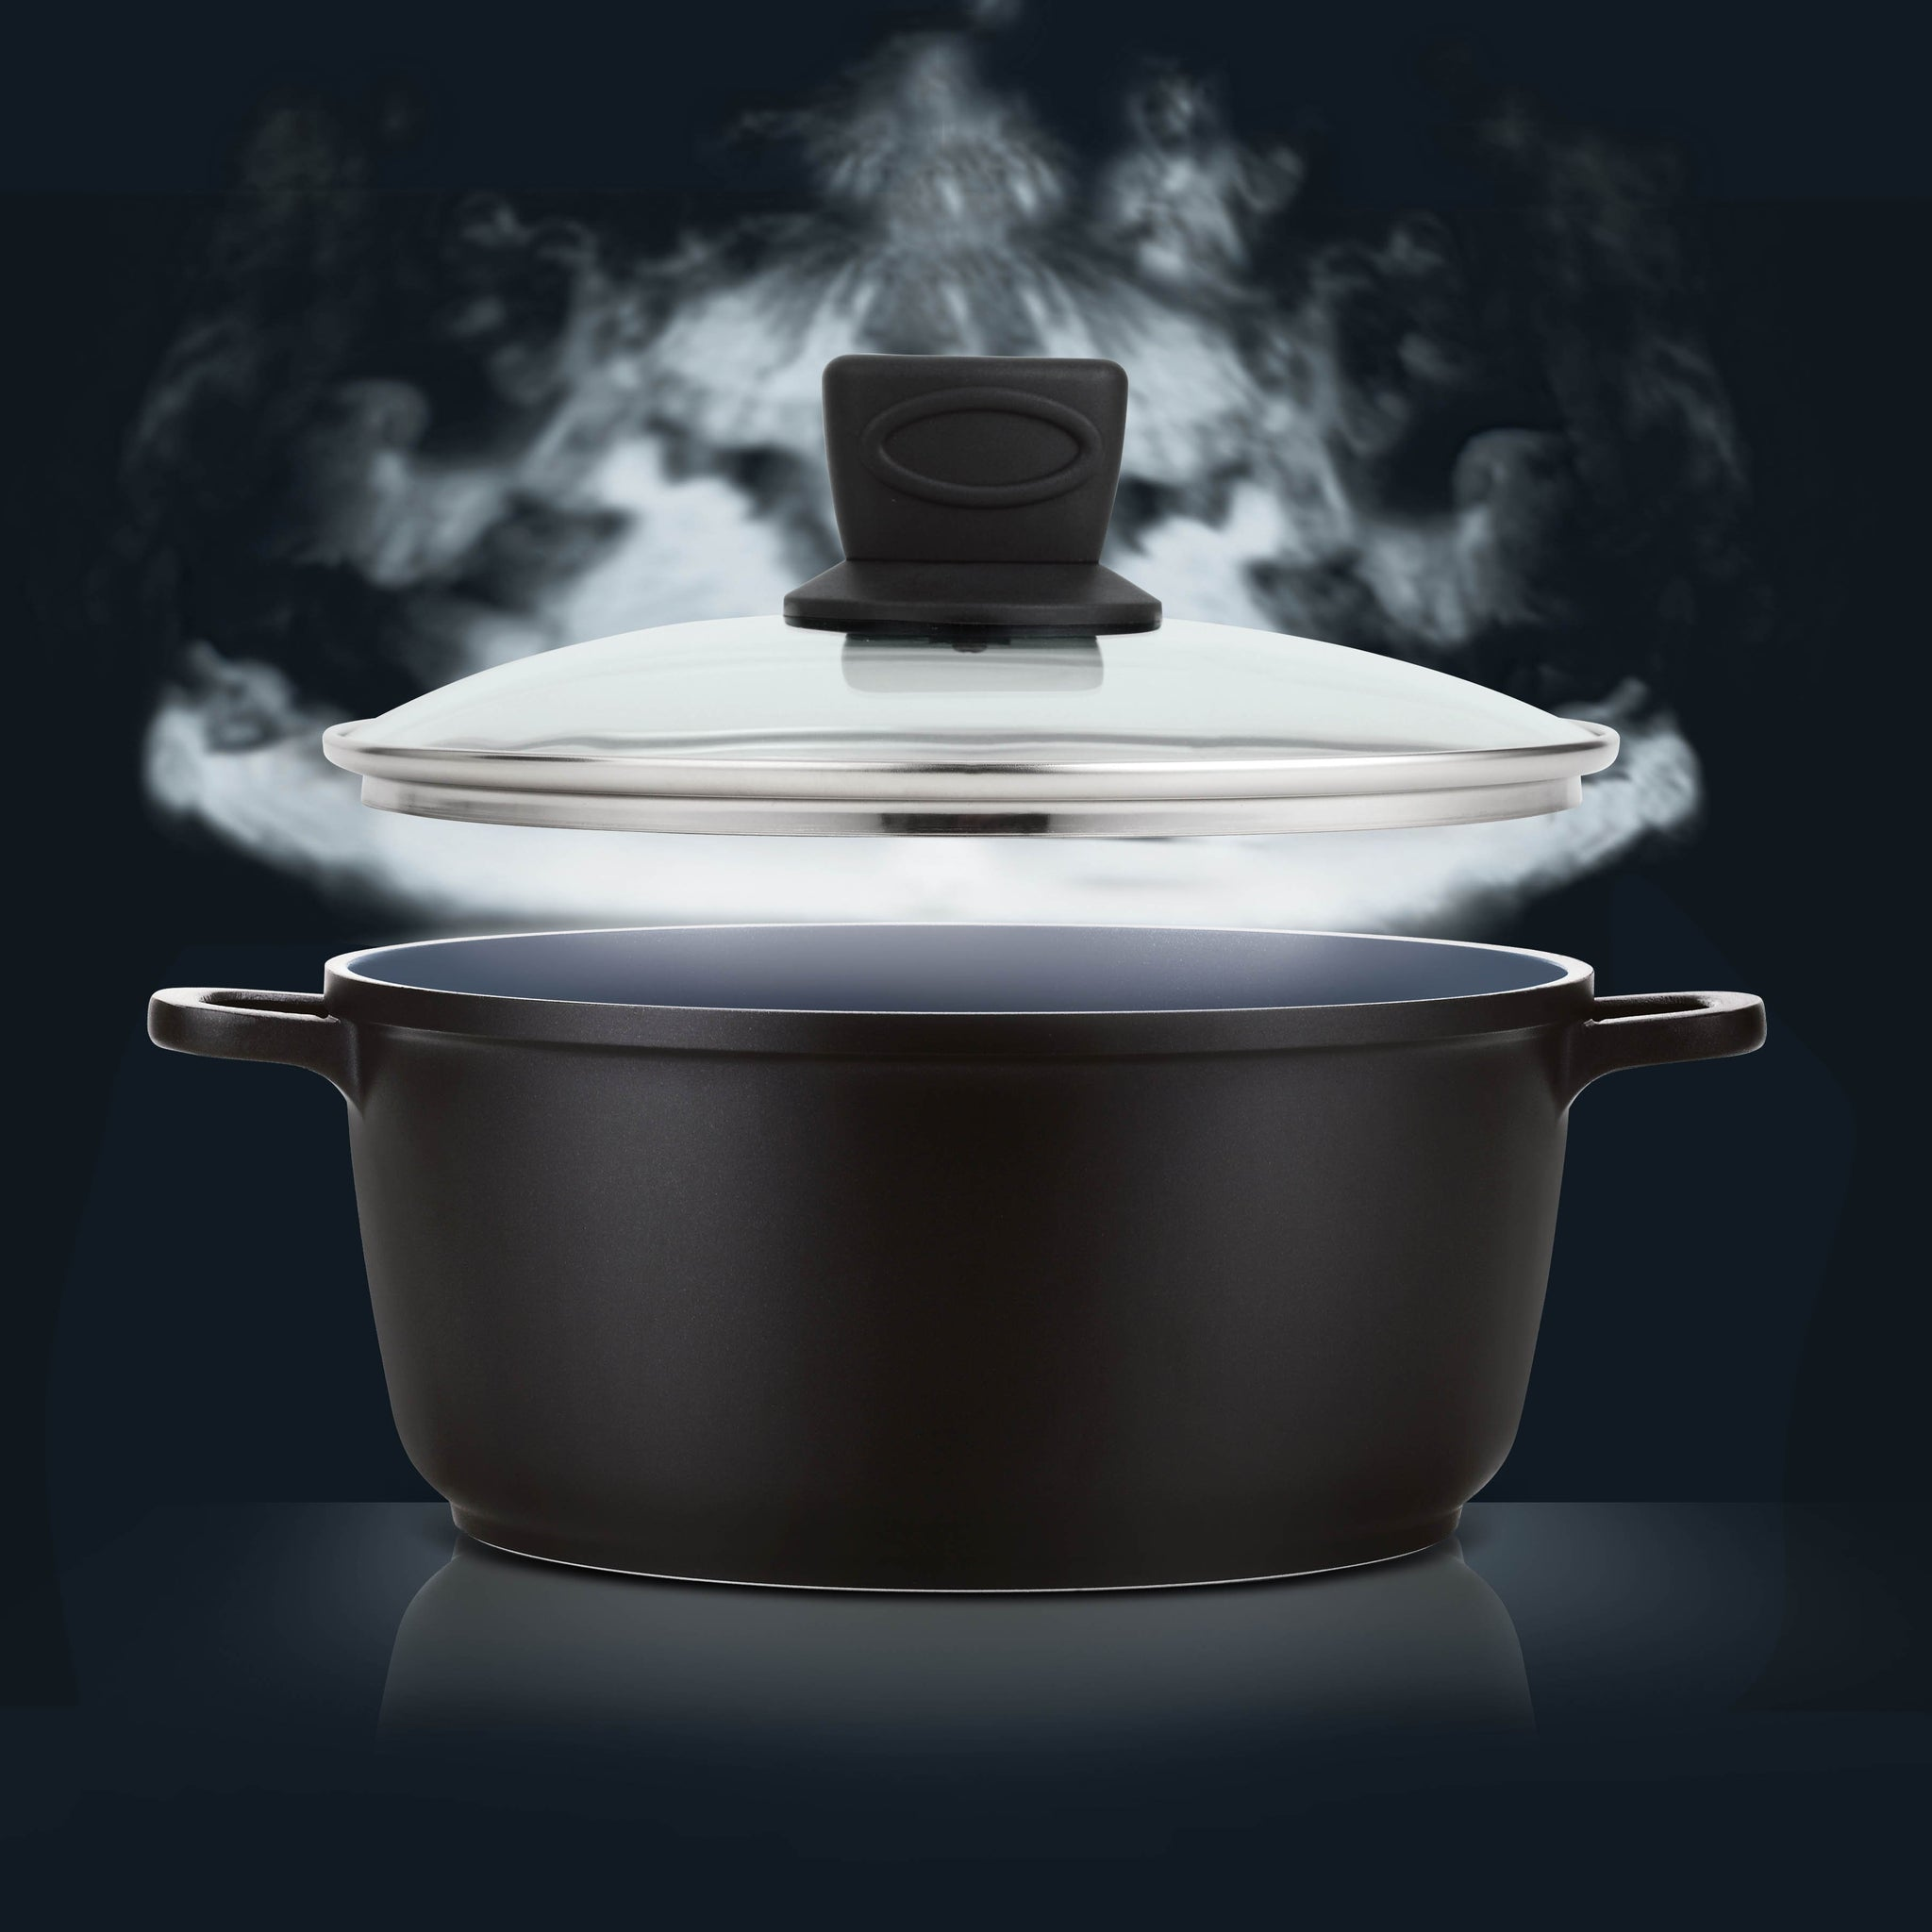 The Ceramic Cookware Market: Why it is Buzzing